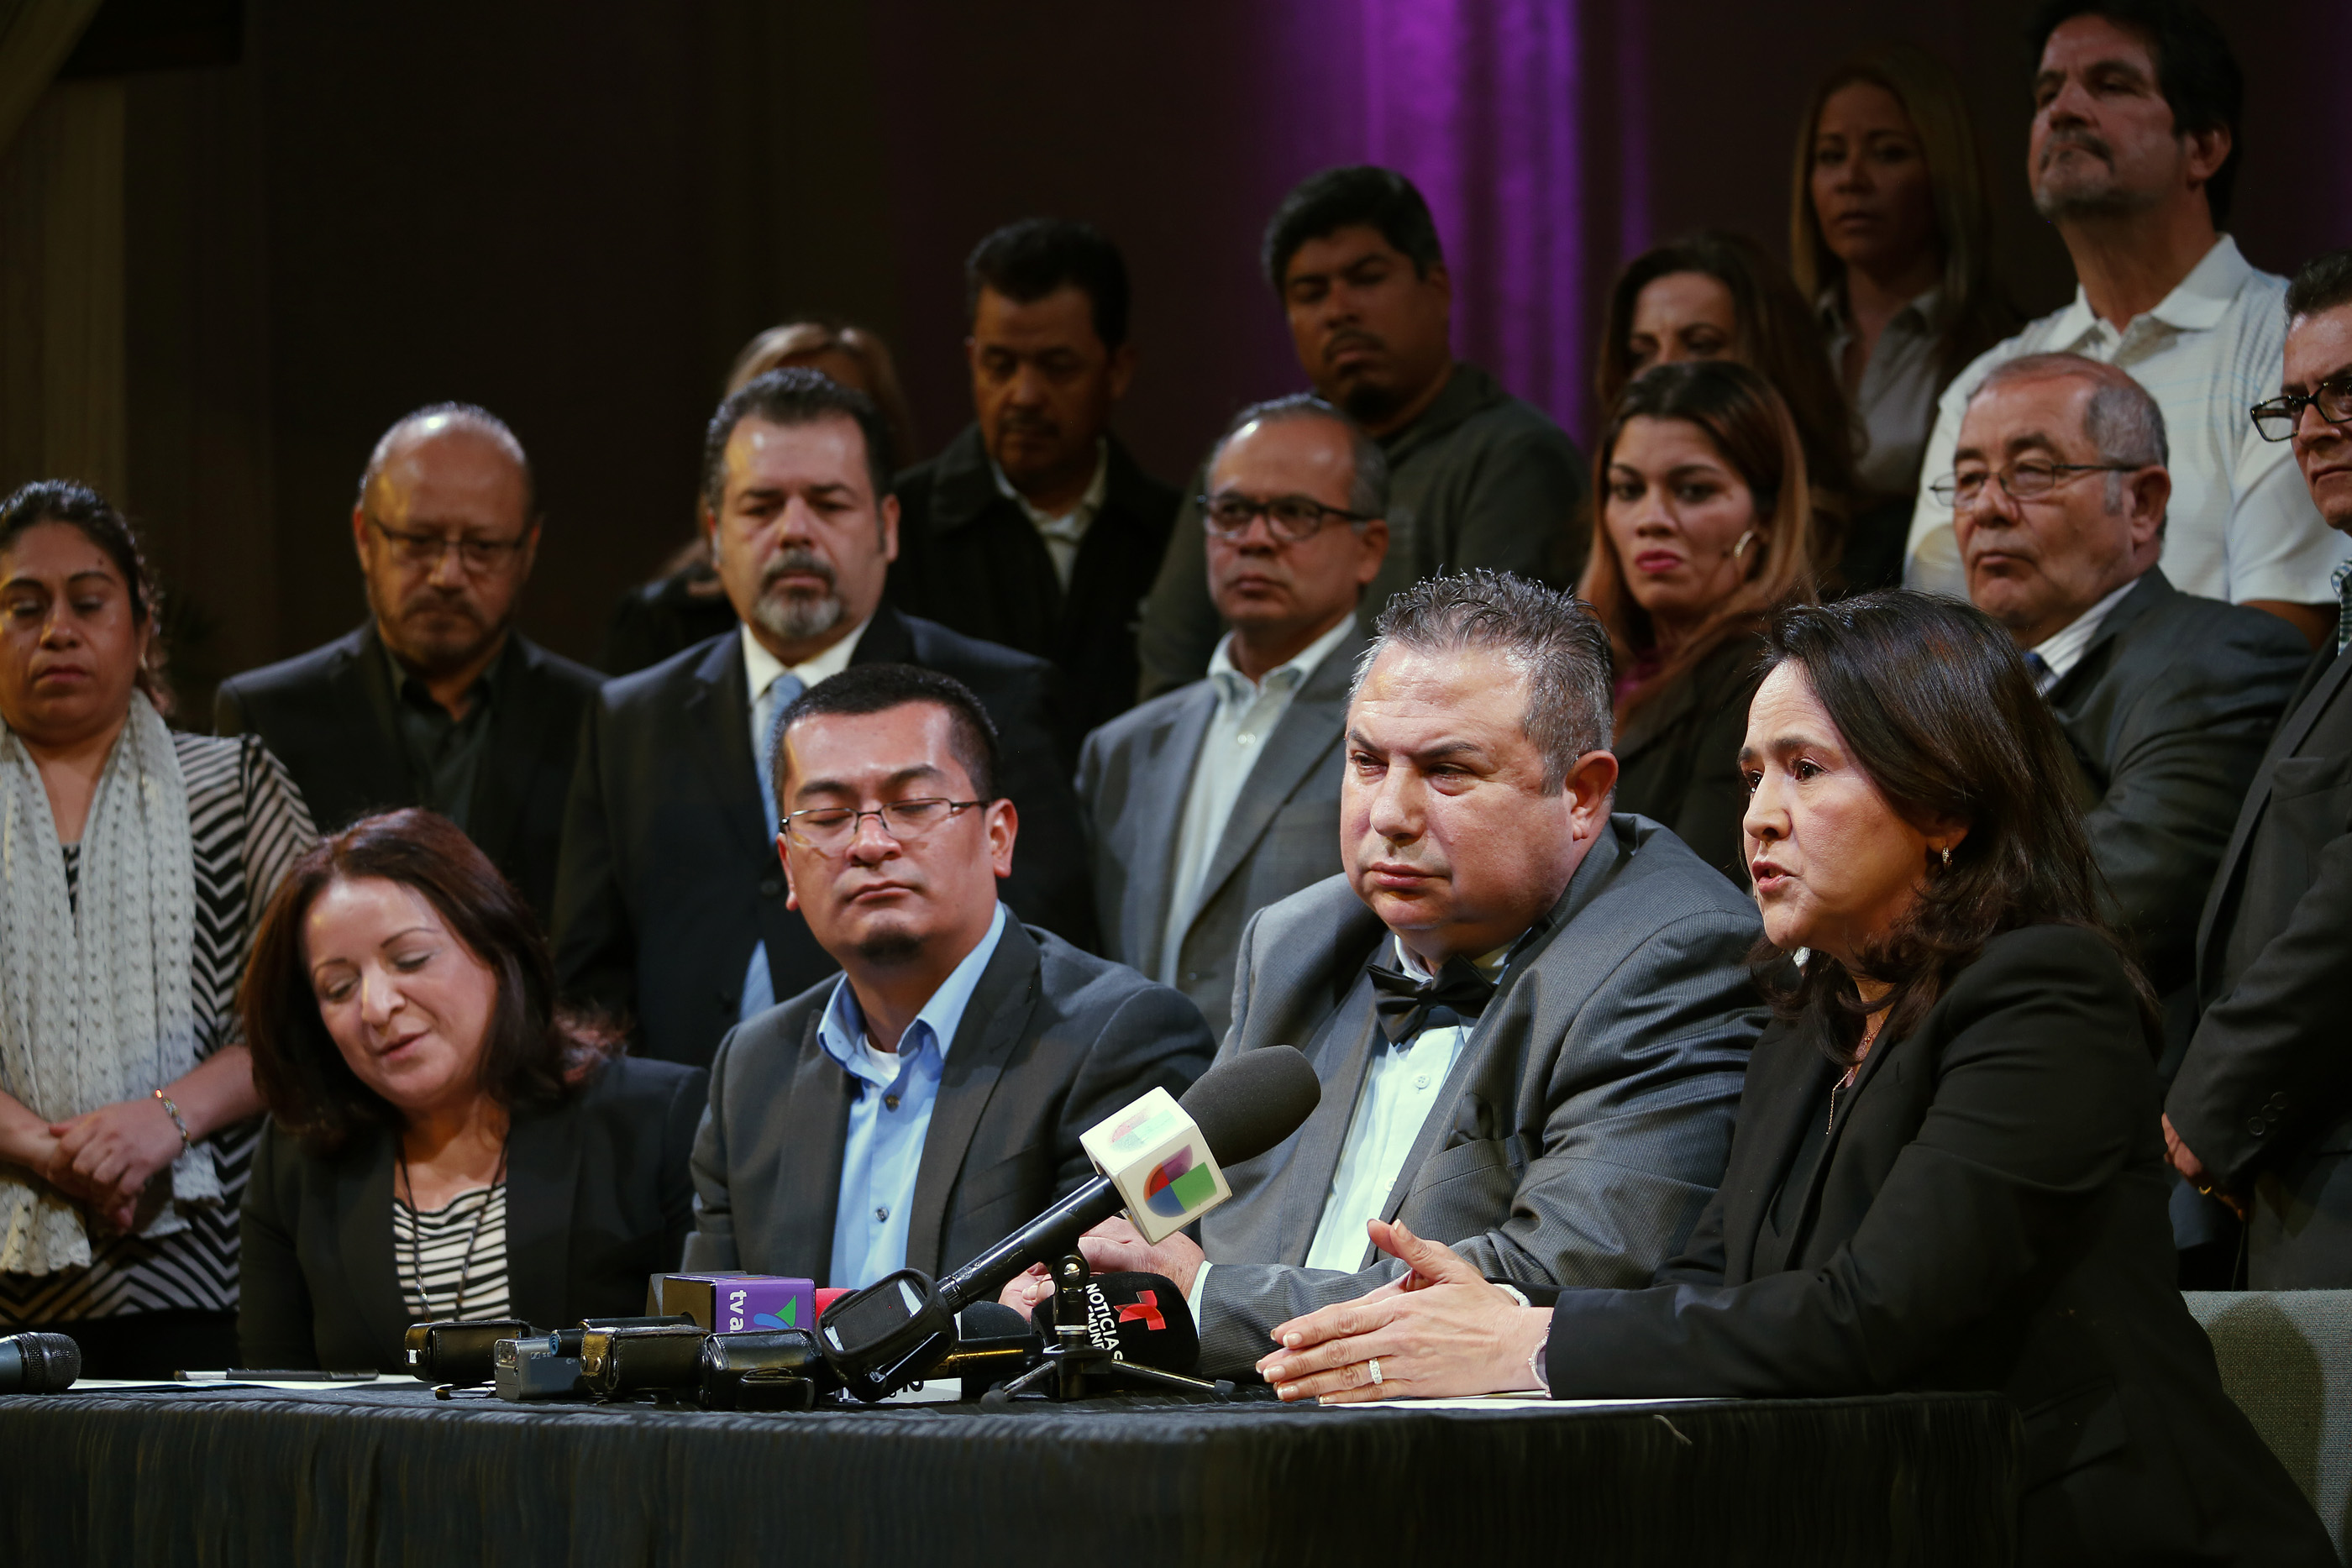 11/29/16/ LOS ANGELES/ Attorney Jessica Dominguez, joined dozens of evangelical pastors, during a press conference at Iglesia Centro De Vida Victoria, the formation of a new evangelical coalition in order to defend the immigrant community, expand and support the sanctuary movement, and inform immigrants about their constitutional rights. (Photo Aurelia Ventura/ La Opinion)